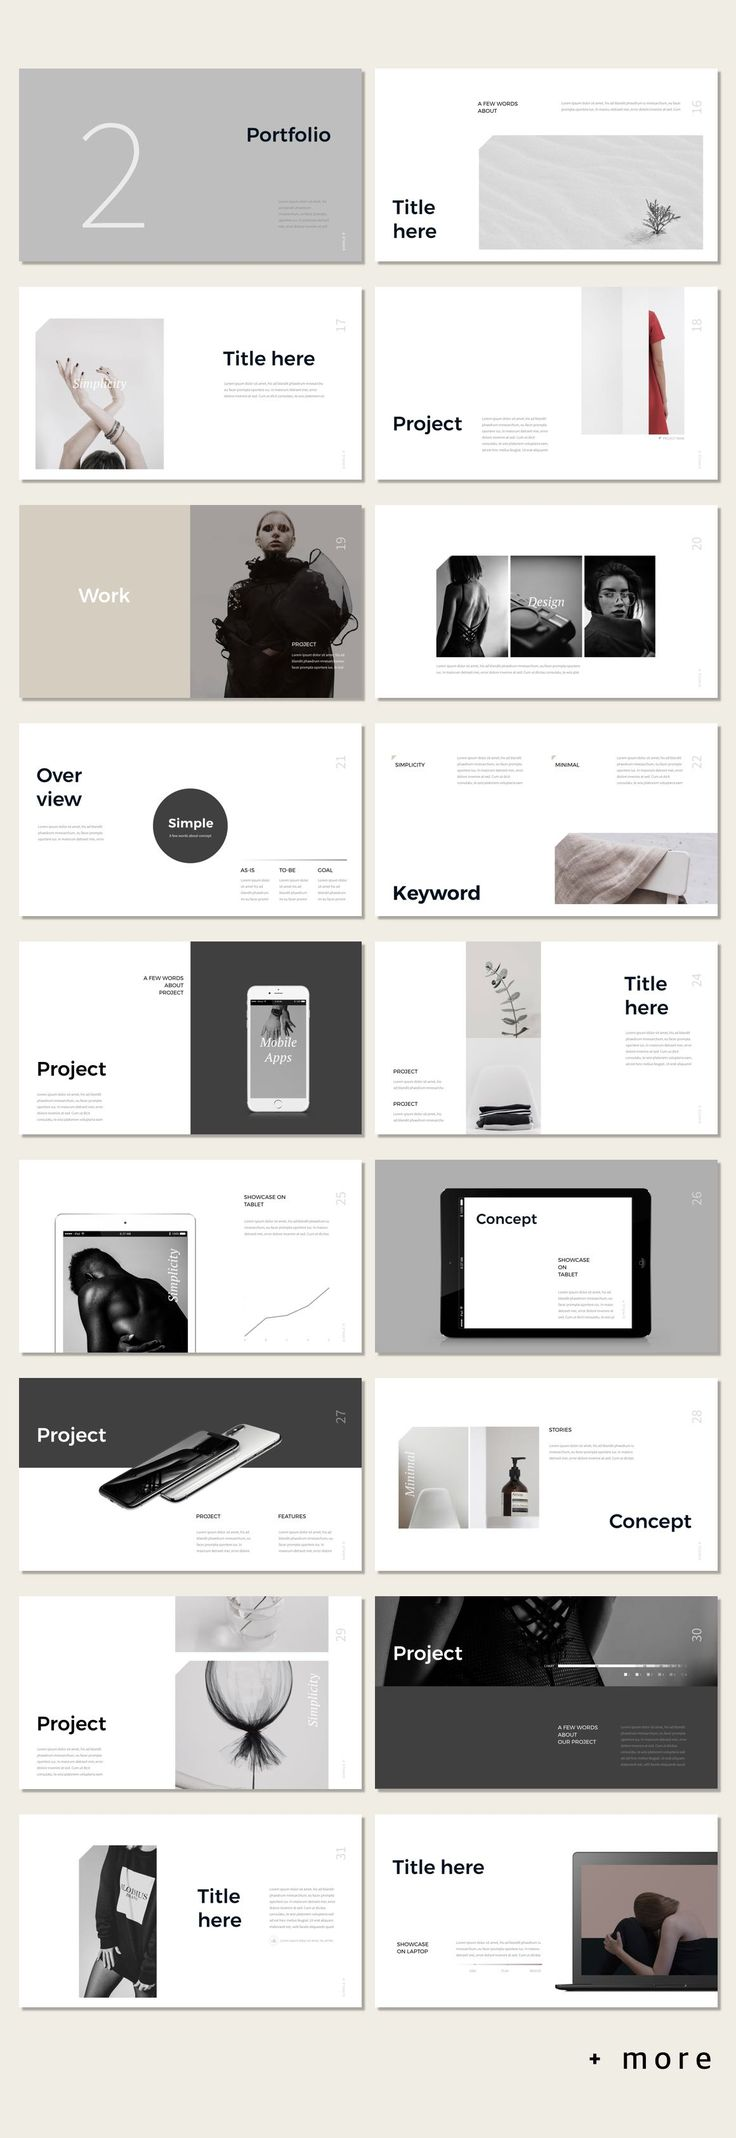 Simple & Minimal Portfolio Presentation #template #keynote #presentation #simple #minimal #portfolio #business